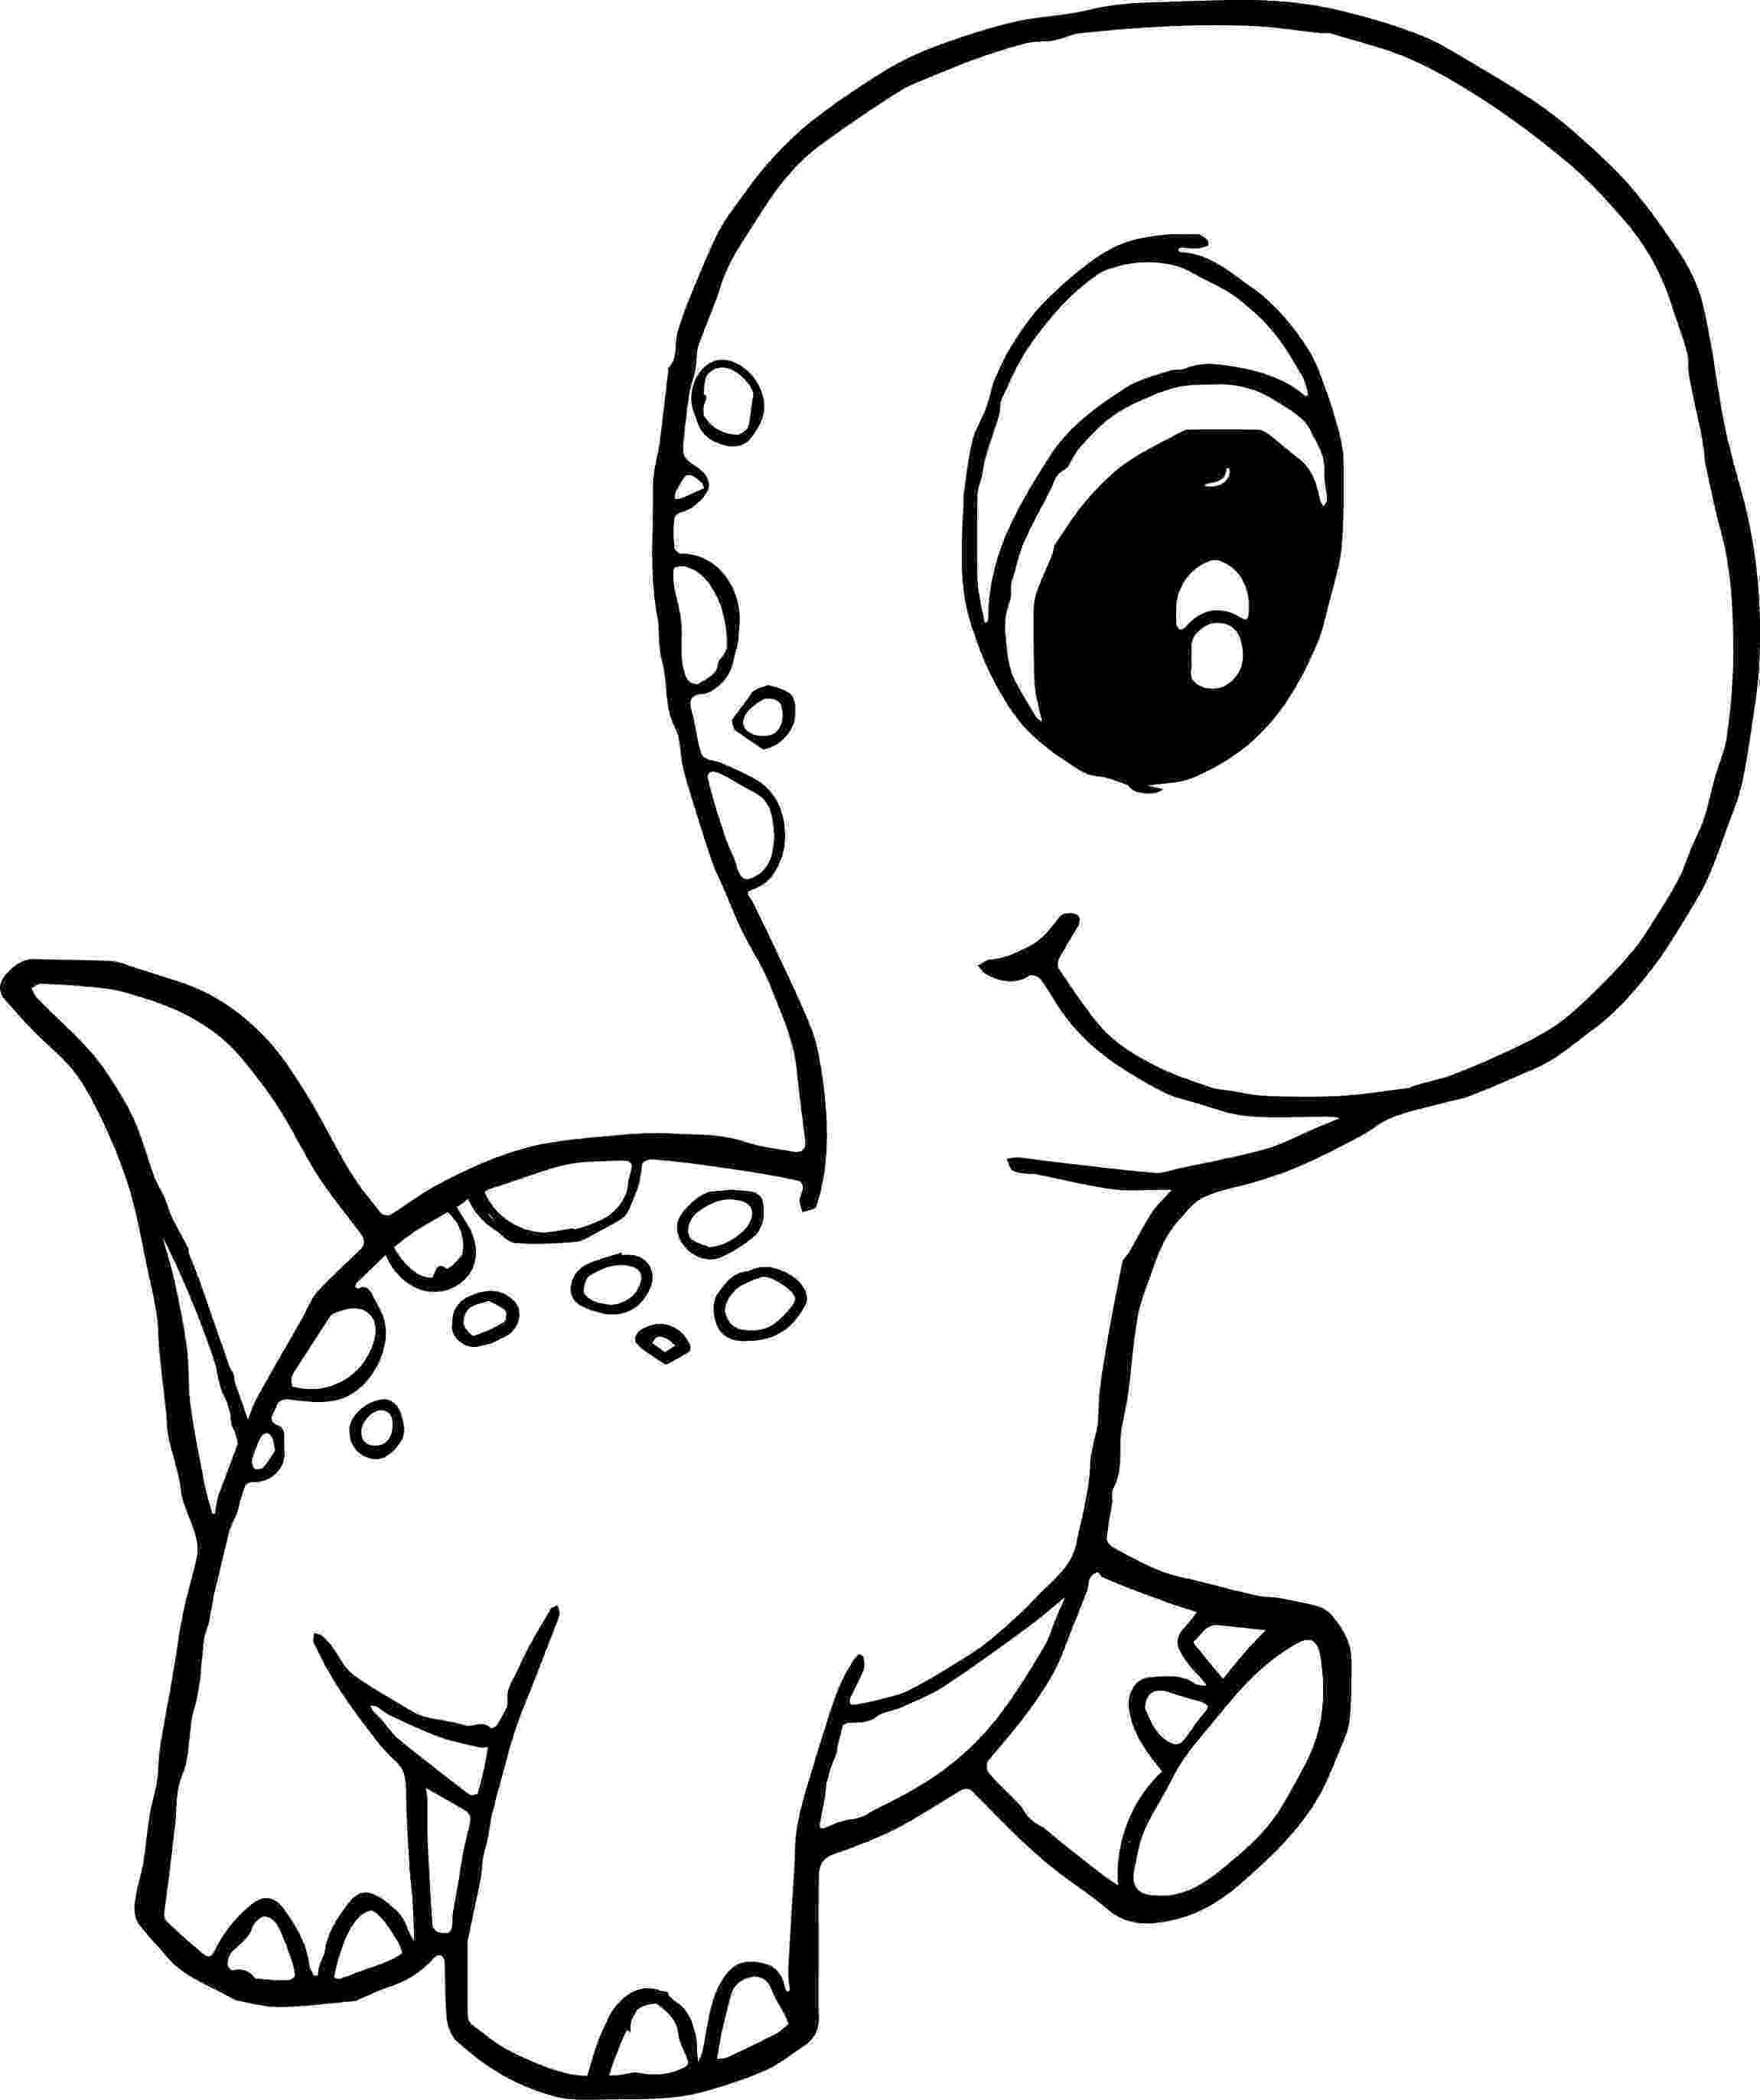 dino colouring pages online baby dinosaur coloring pages for preschoolers activity online dino pages colouring